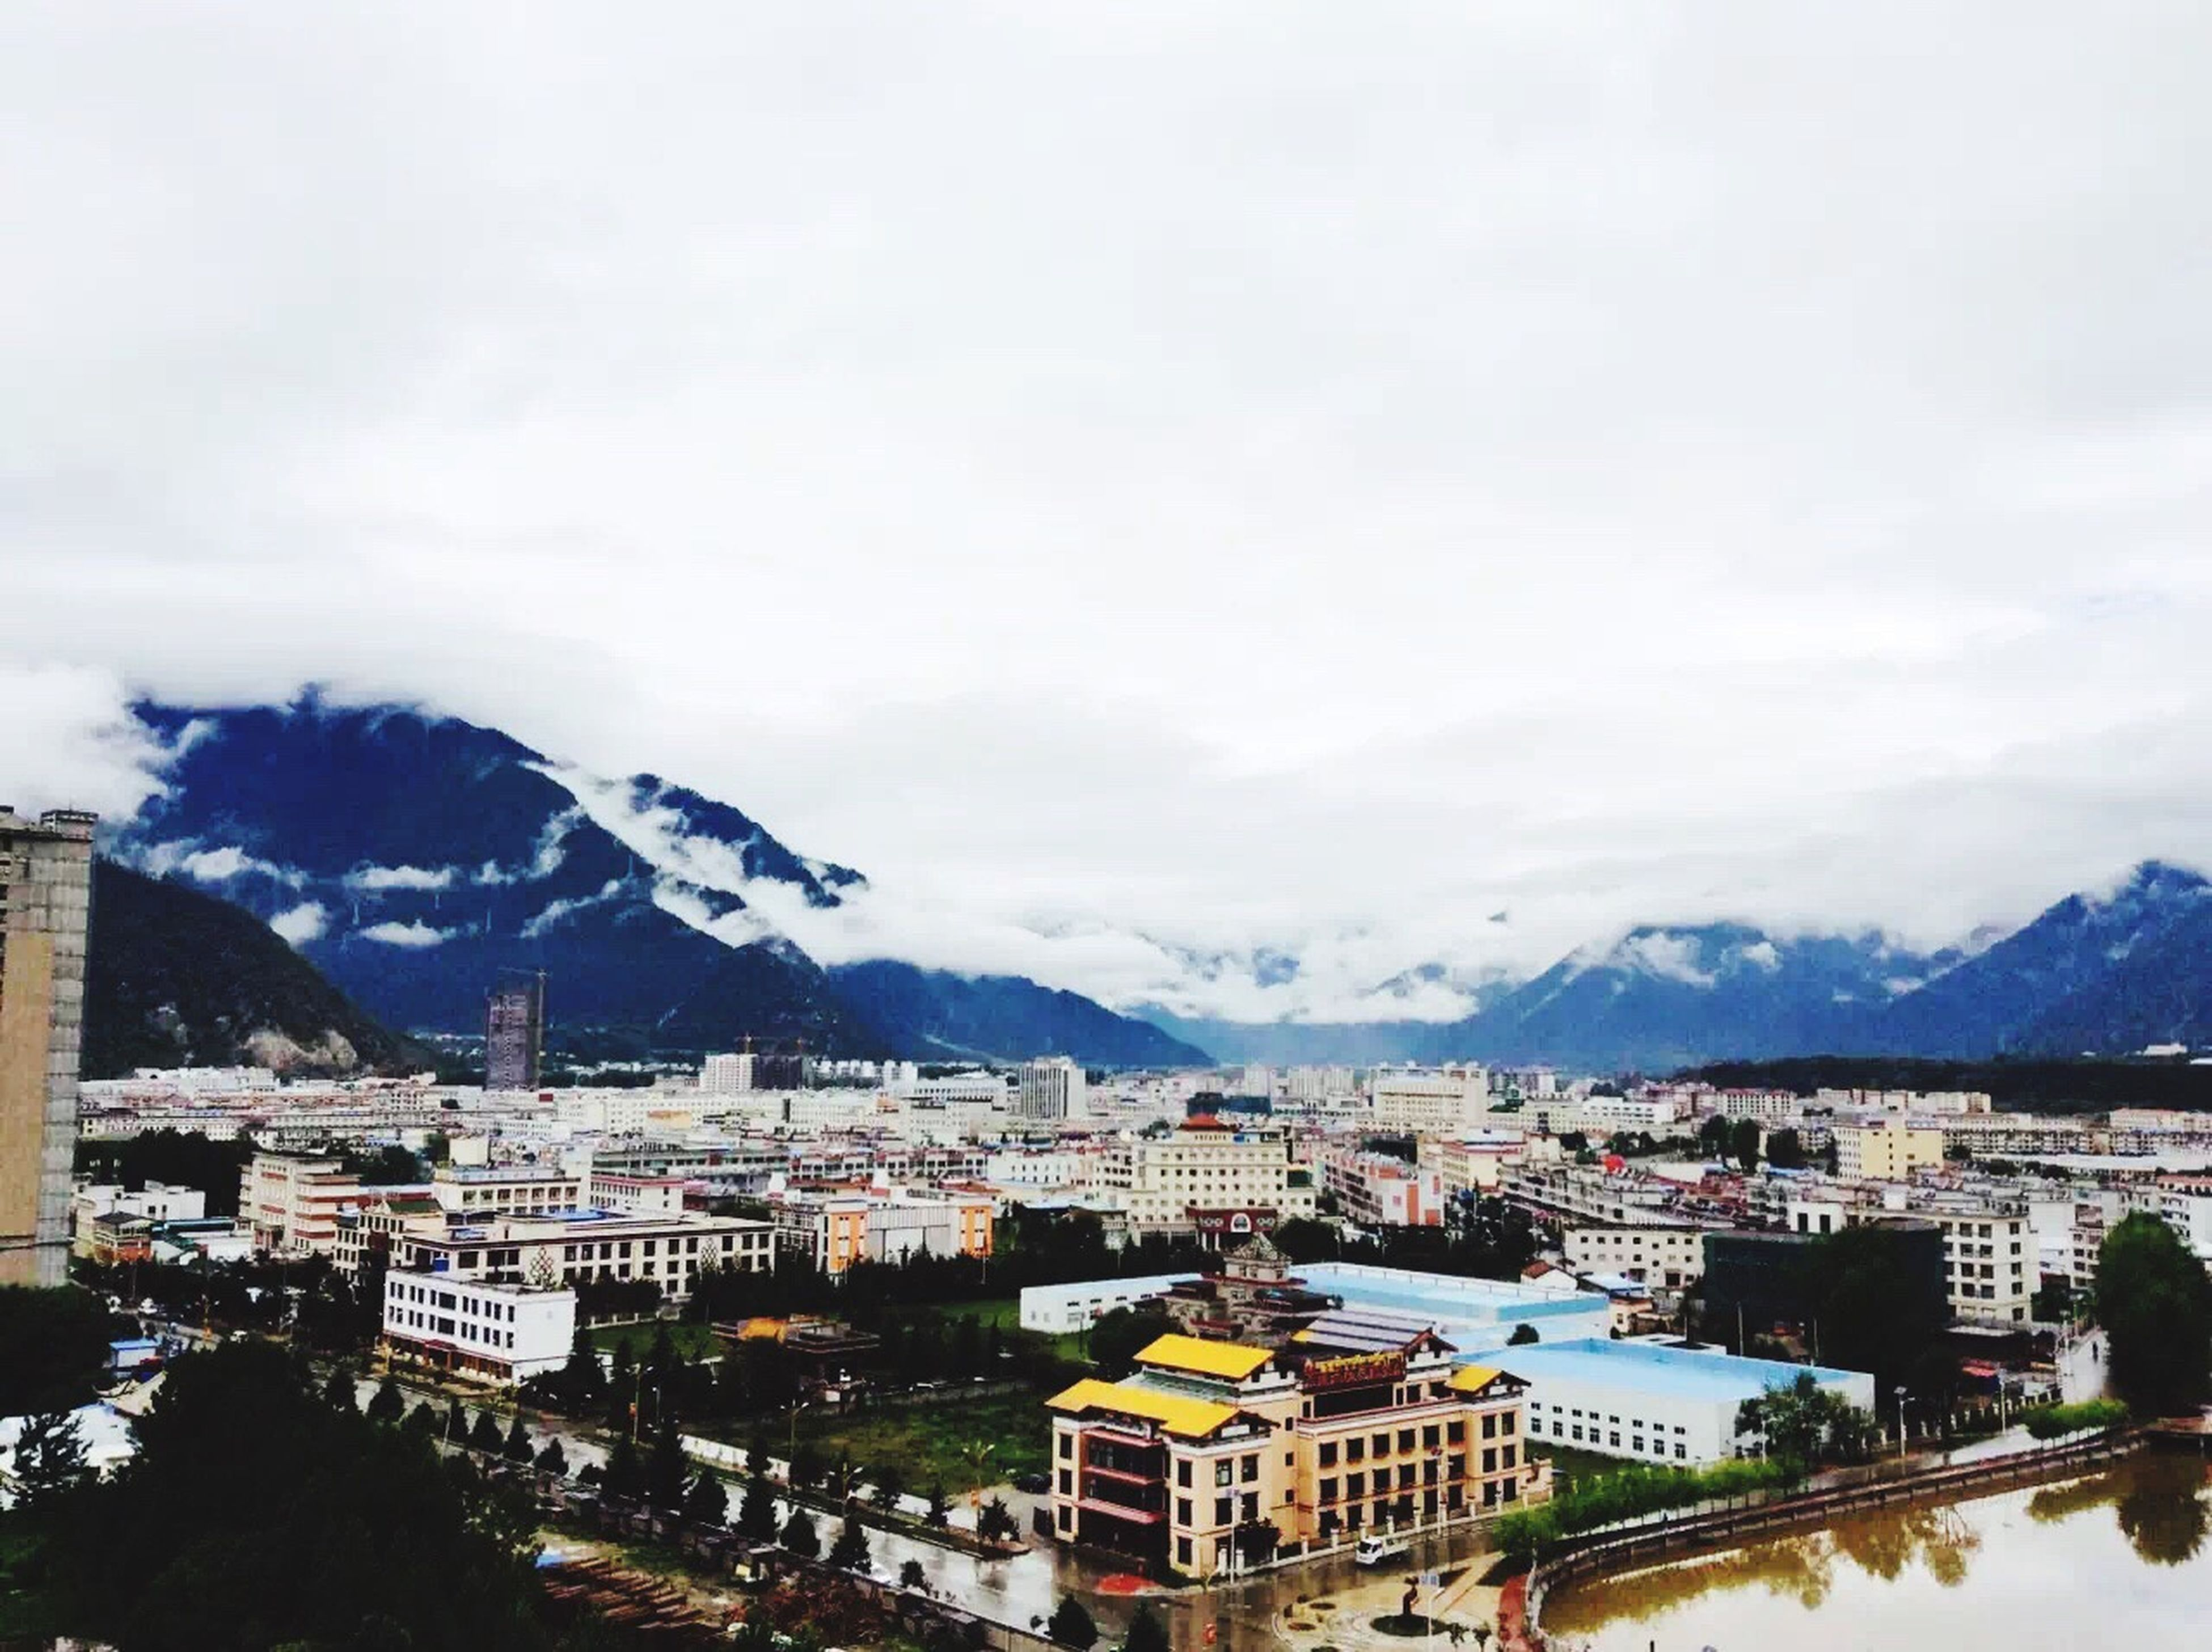 mountain, building exterior, architecture, built structure, mountain range, sky, residential district, house, city, cityscape, town, residential structure, residential building, cloud - sky, high angle view, townscape, winter, crowded, cloud, weather